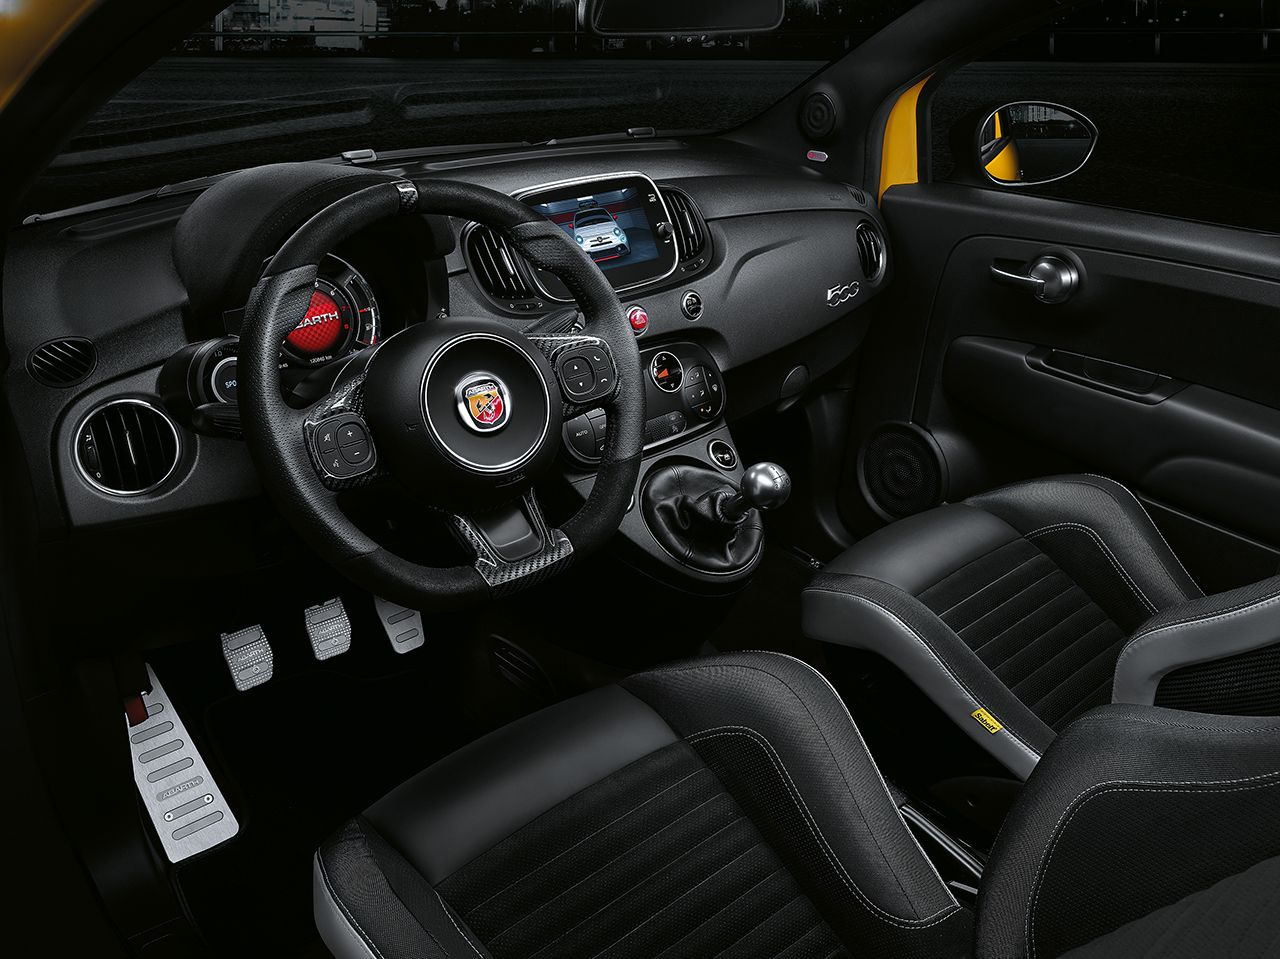 Fiat 500 Abarth 595 geel facelift 2017 03